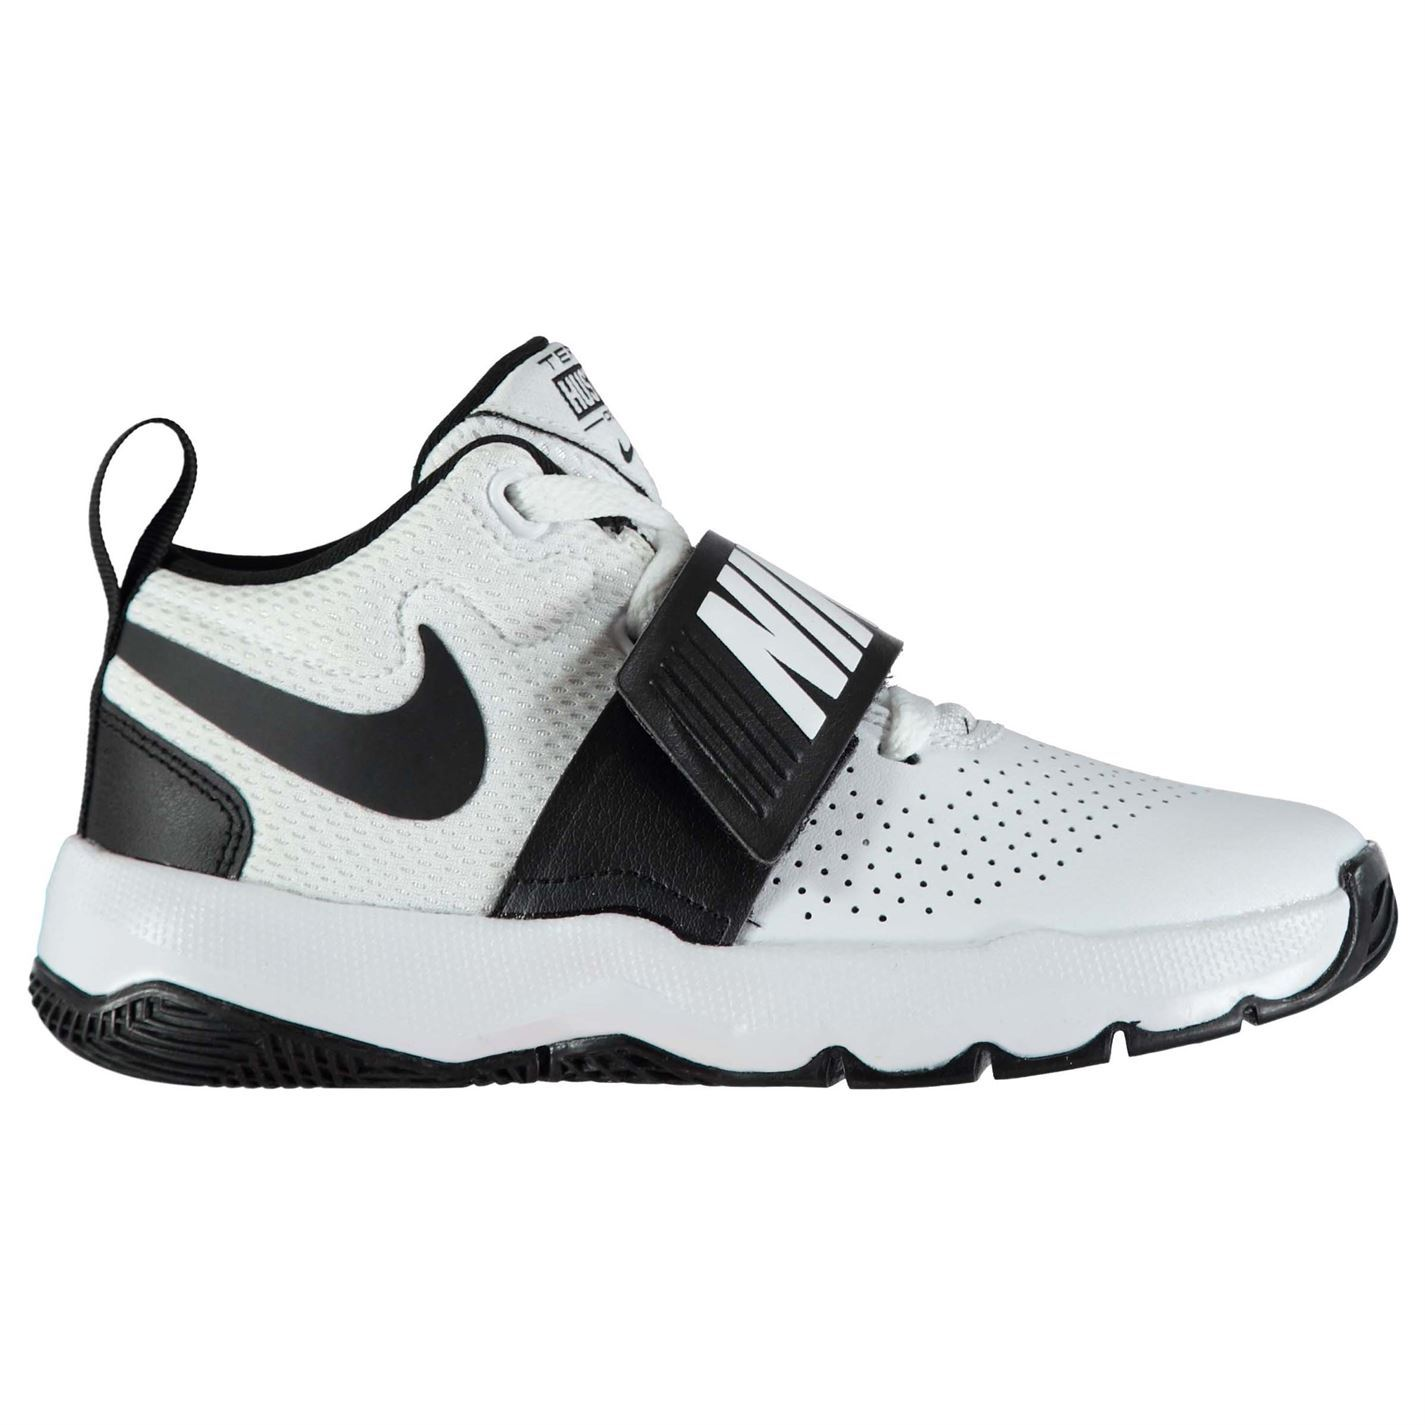 e93165ee64d ... Nike Team Hustle D8 Basketball Shoes Juniors White Black Trainers  Sneakers ...